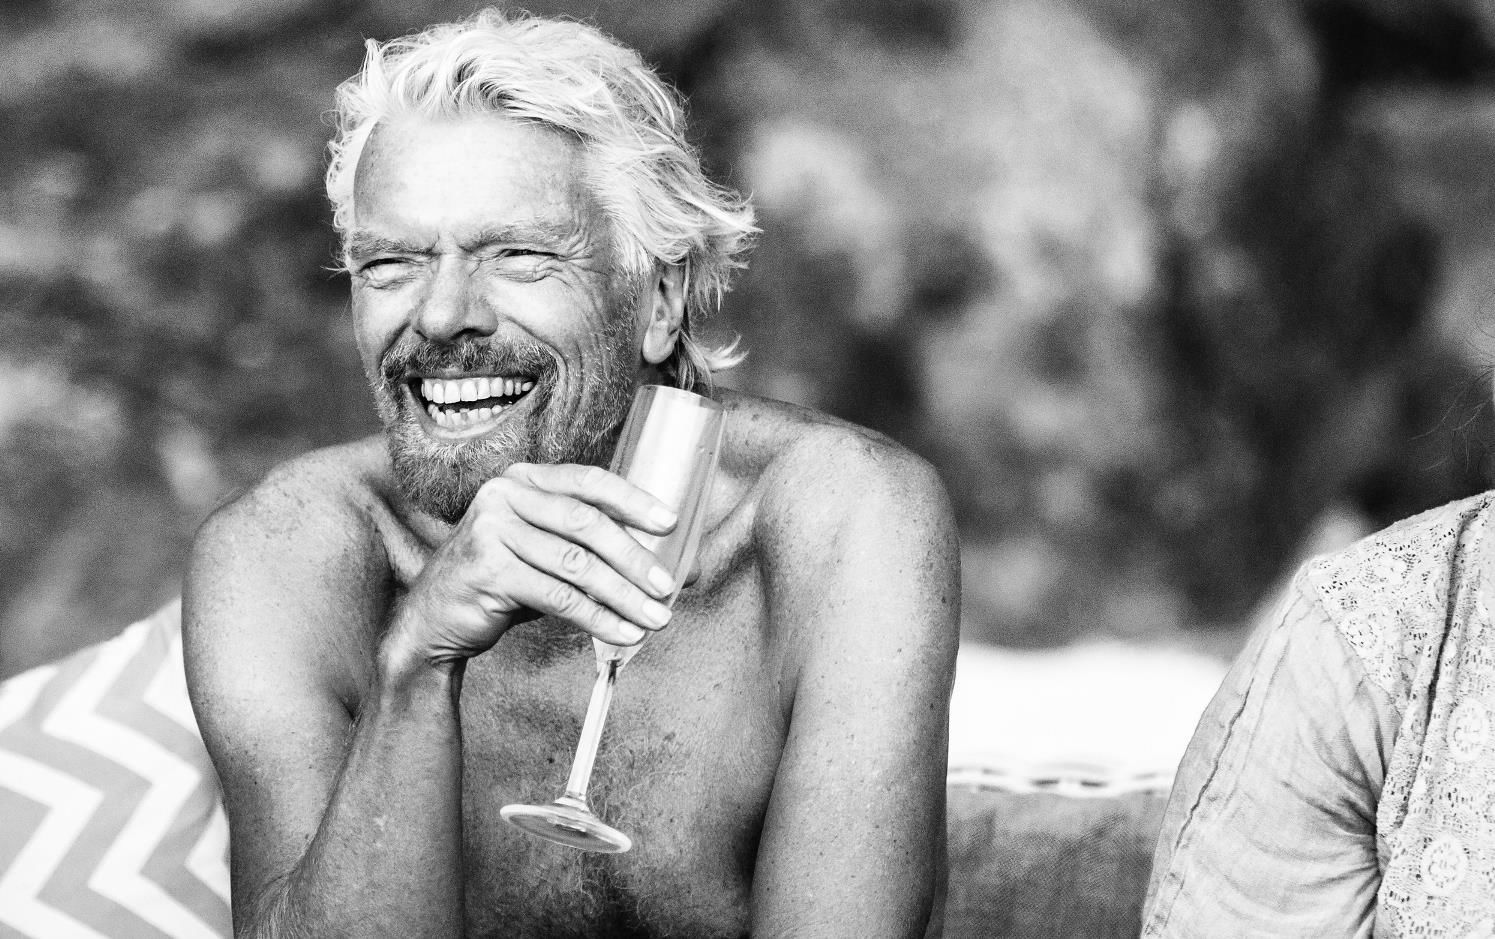 Richard Branson enjoying a drink